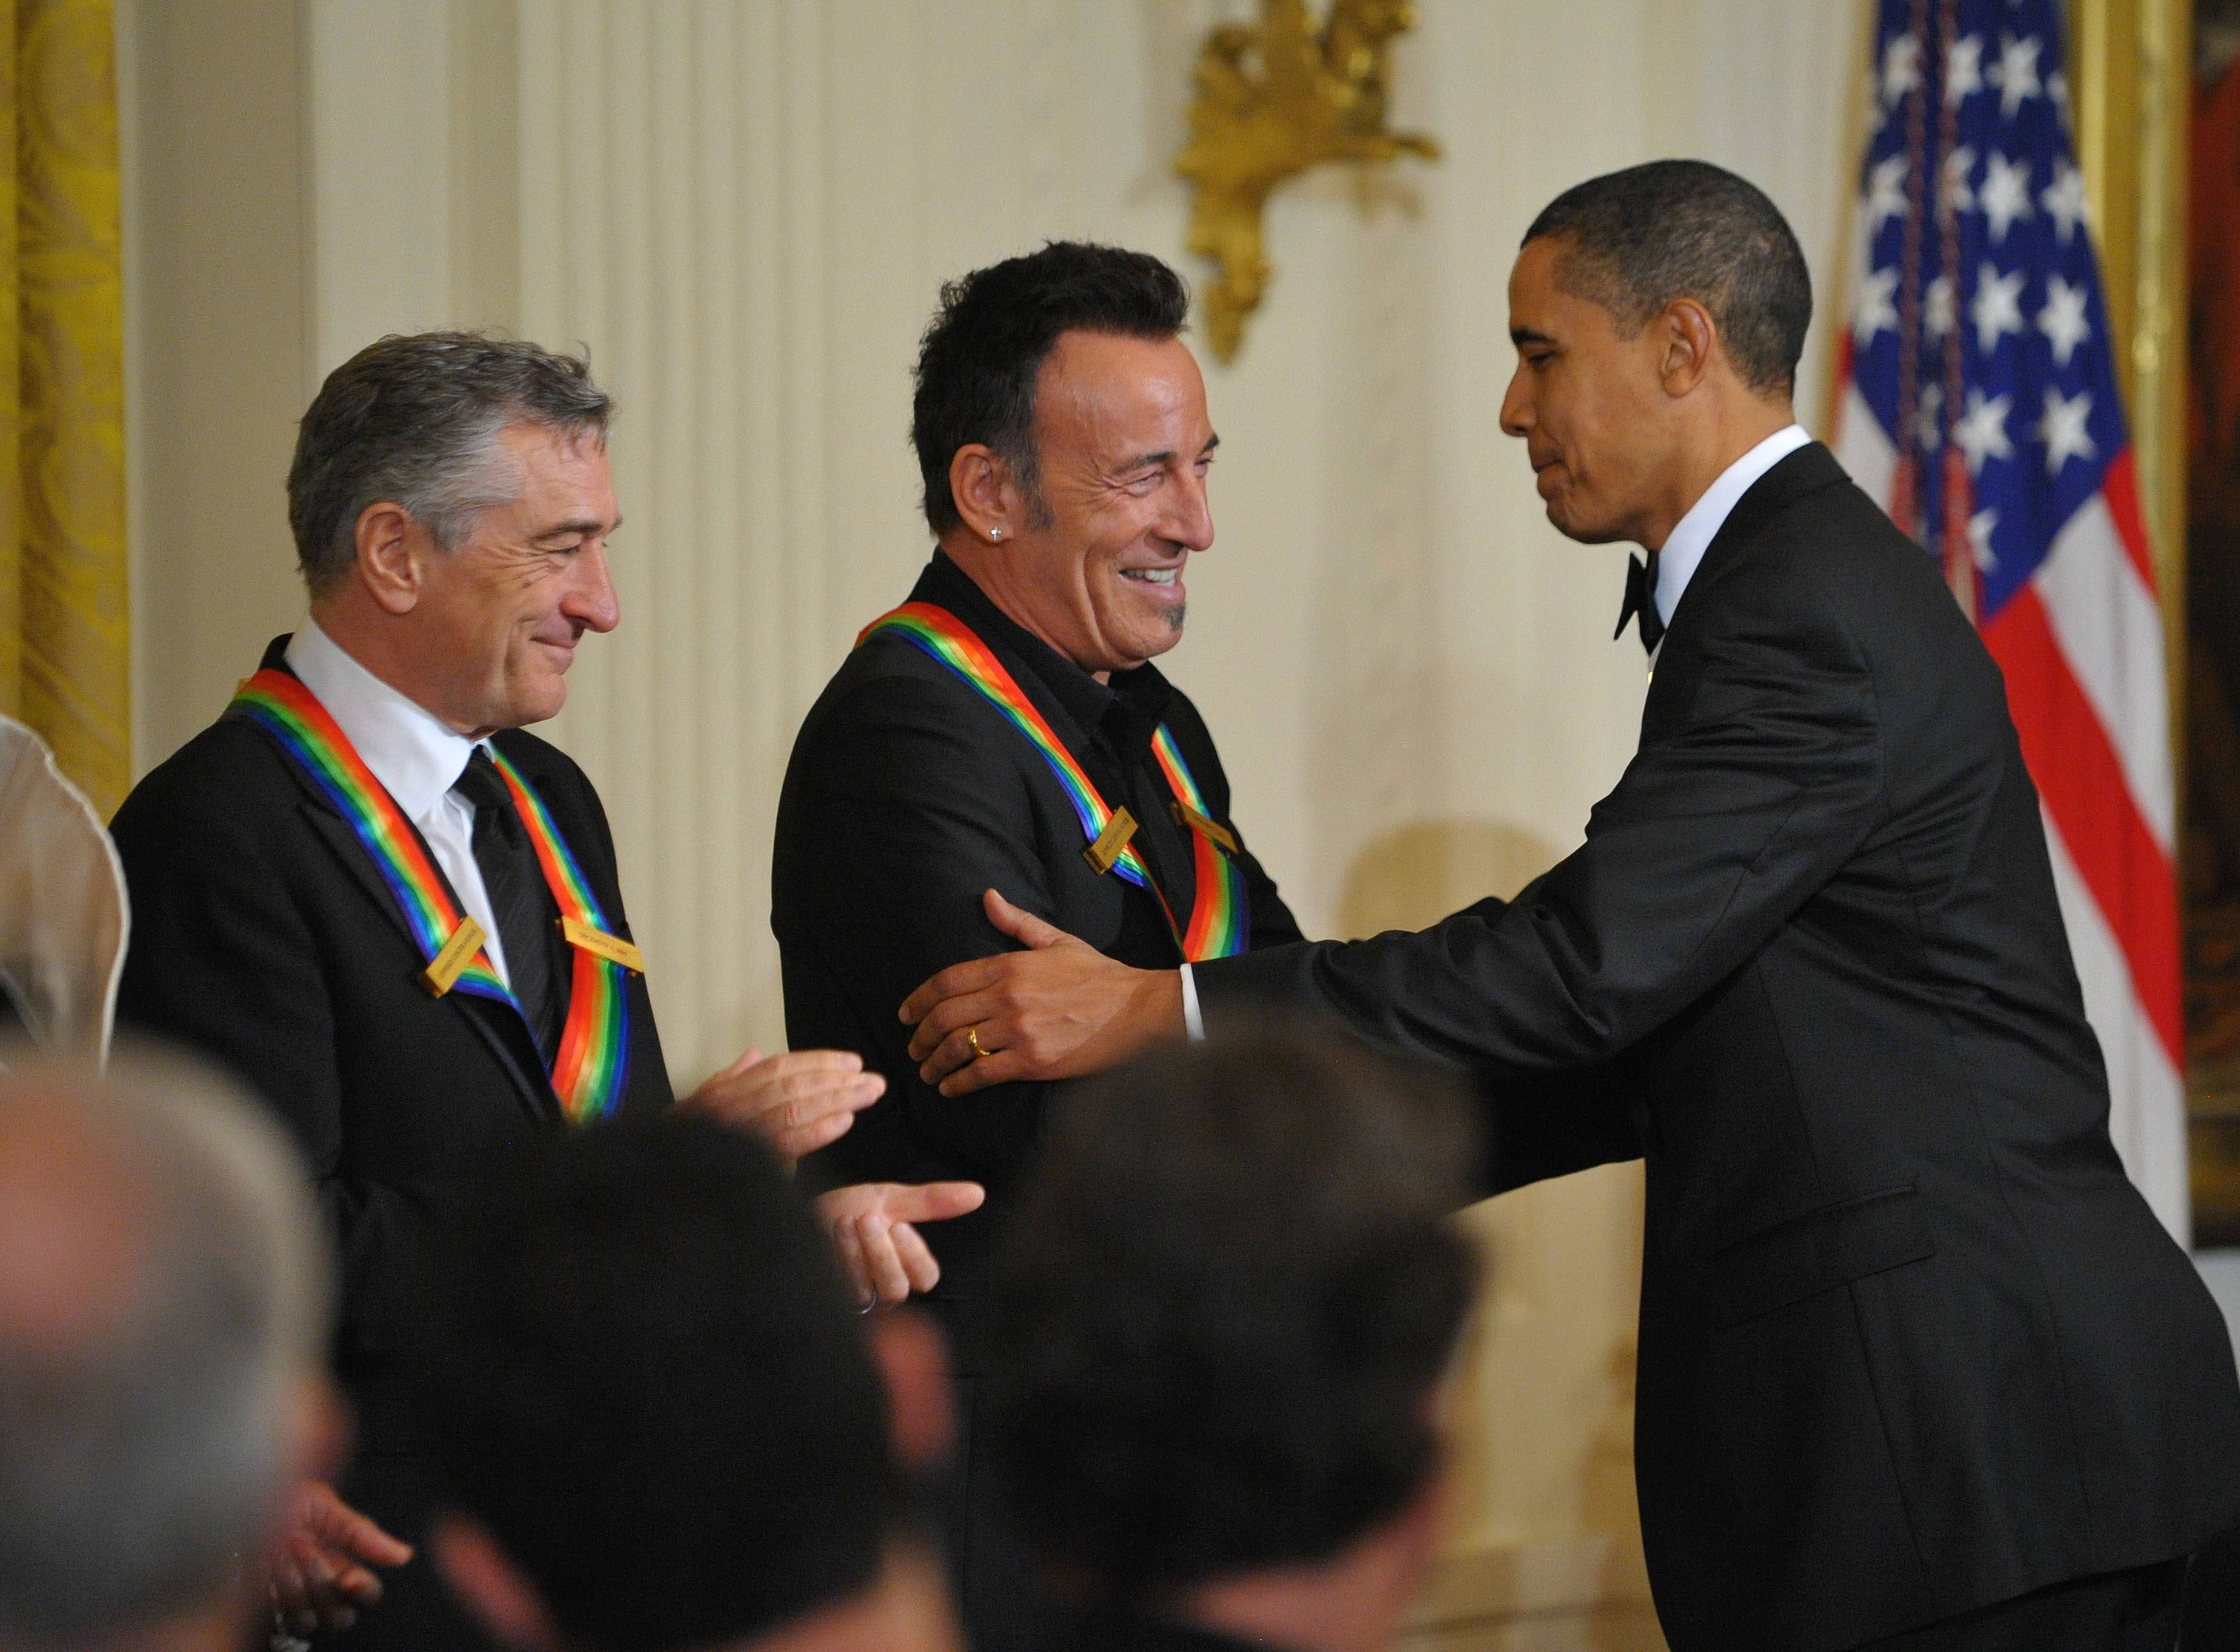 Robert De Niro, Bruce Springsteen, Barack Obama 2009 Kennedy Center Honors